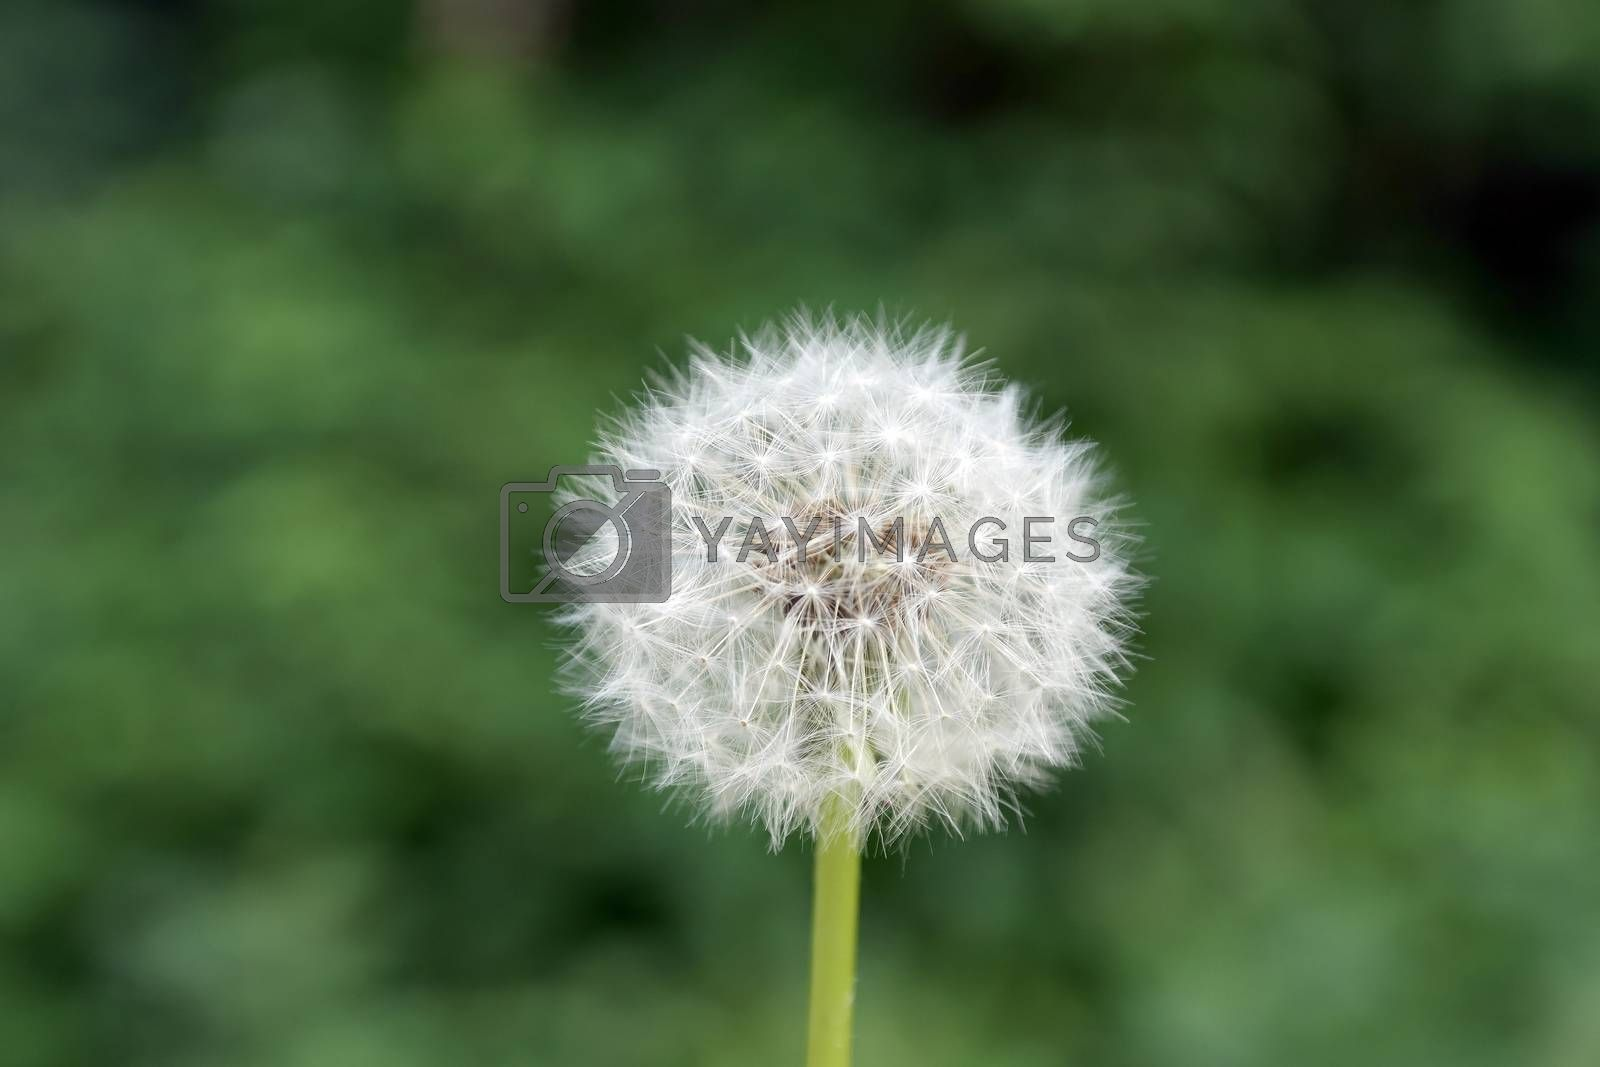 dandelion on green blurred background by sergpet